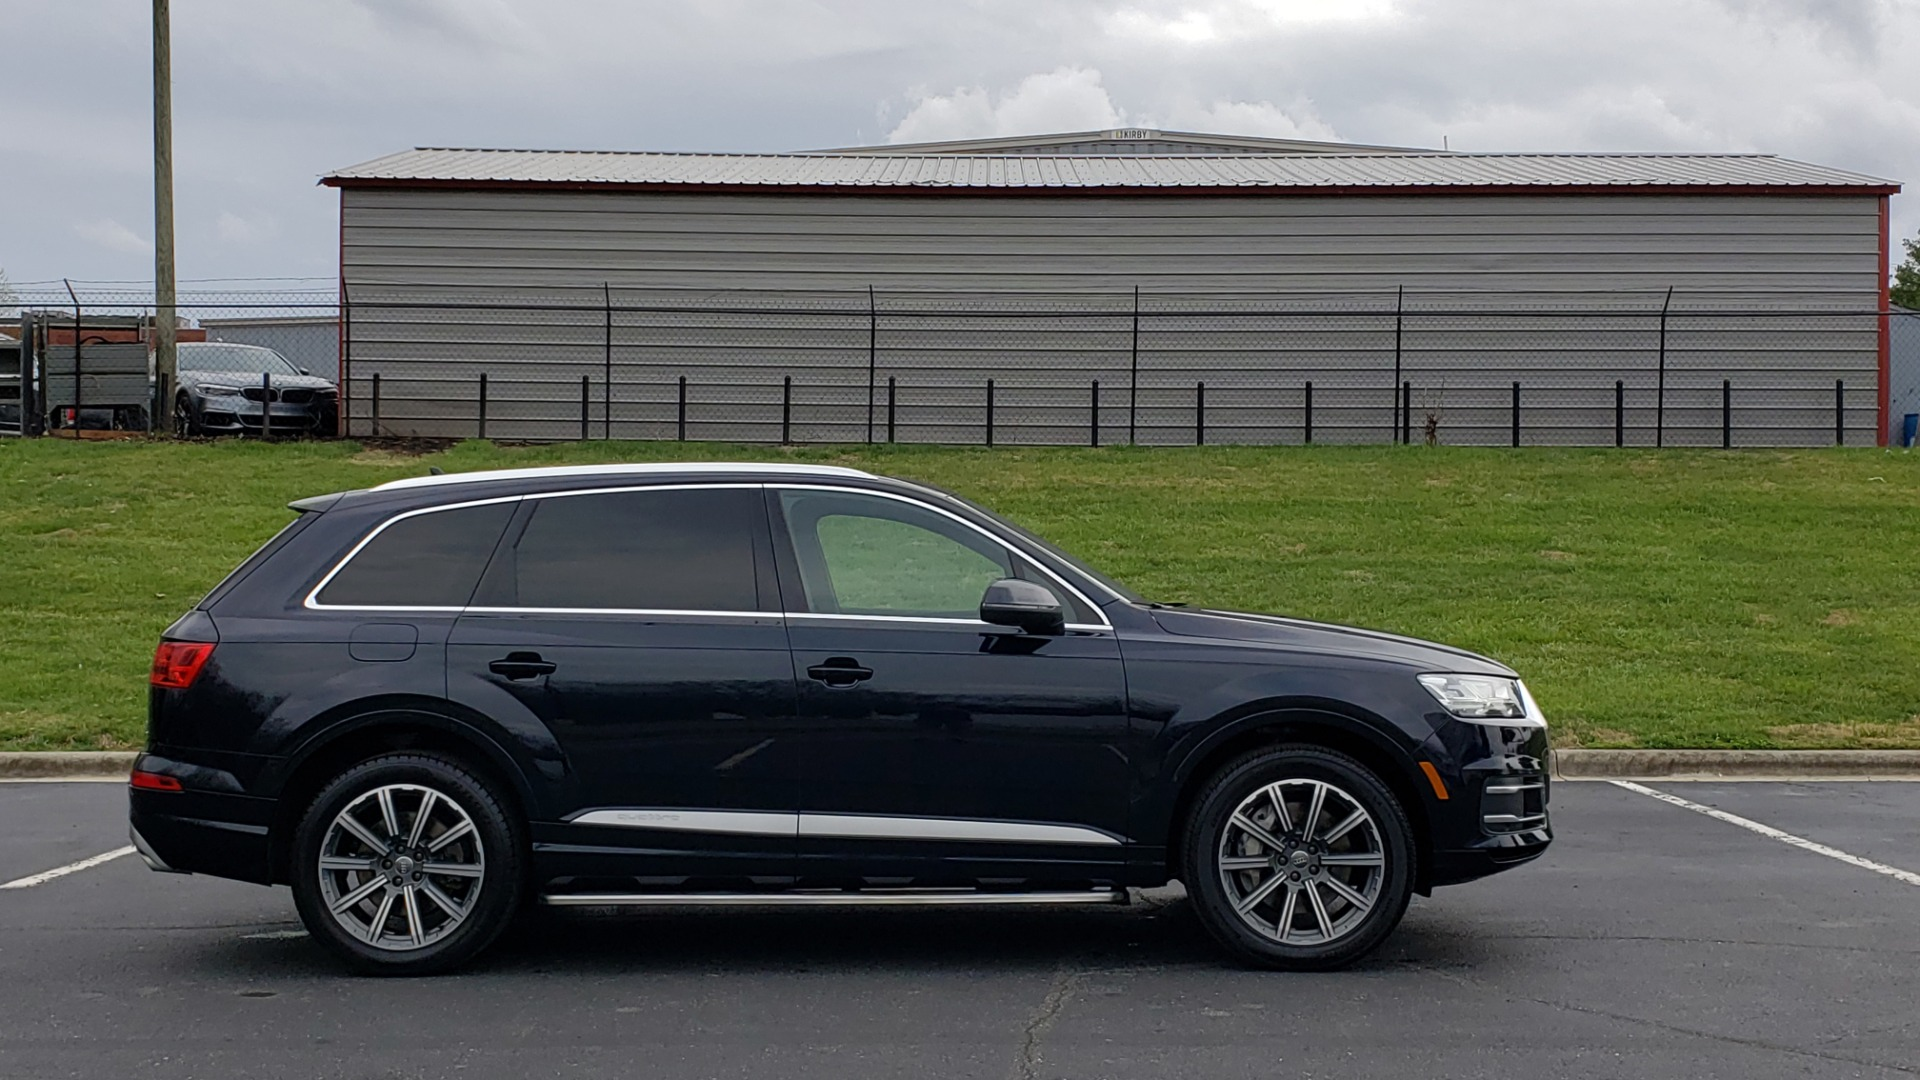 Used 2017 Audi Q7 PRESTIGE 3.0T / AWD / NAV / PANO-ROOF / HTD STS / BOSE / VISION for sale Sold at Formula Imports in Charlotte NC 28227 5